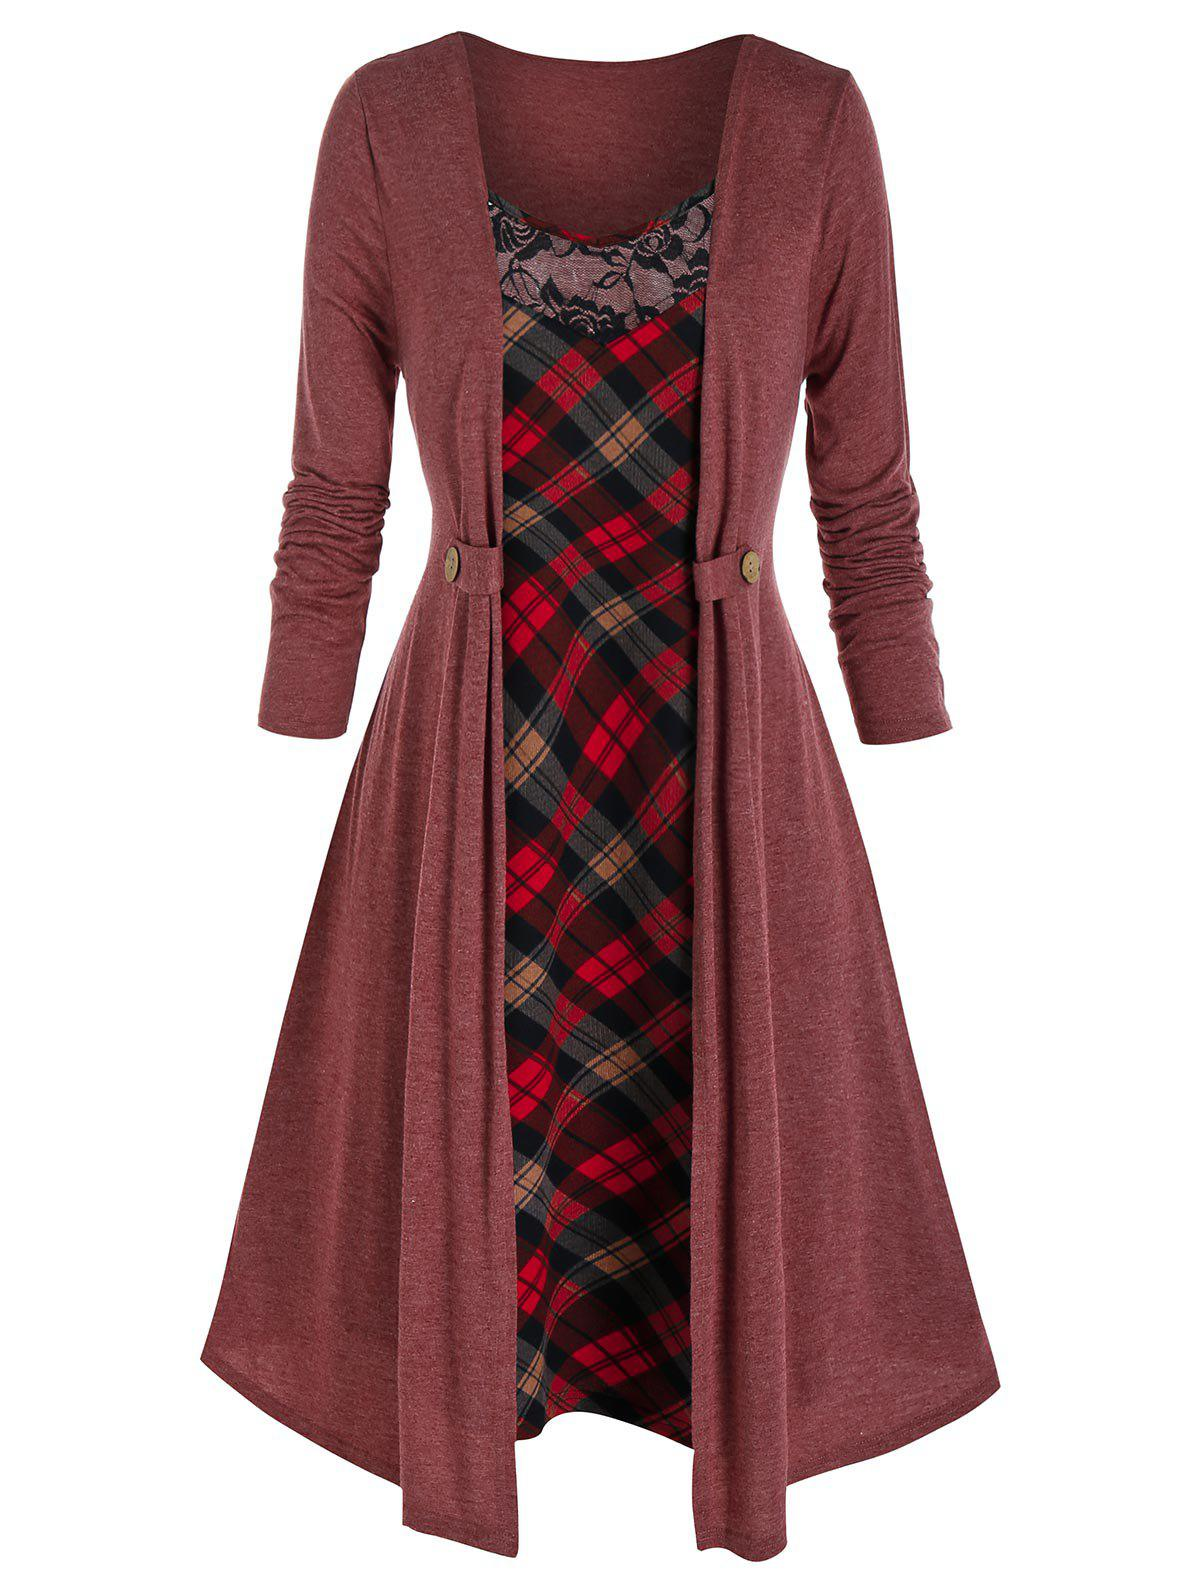 Plus Size Plaid Swing Dress and Cardigan Set - RED WINE 4X